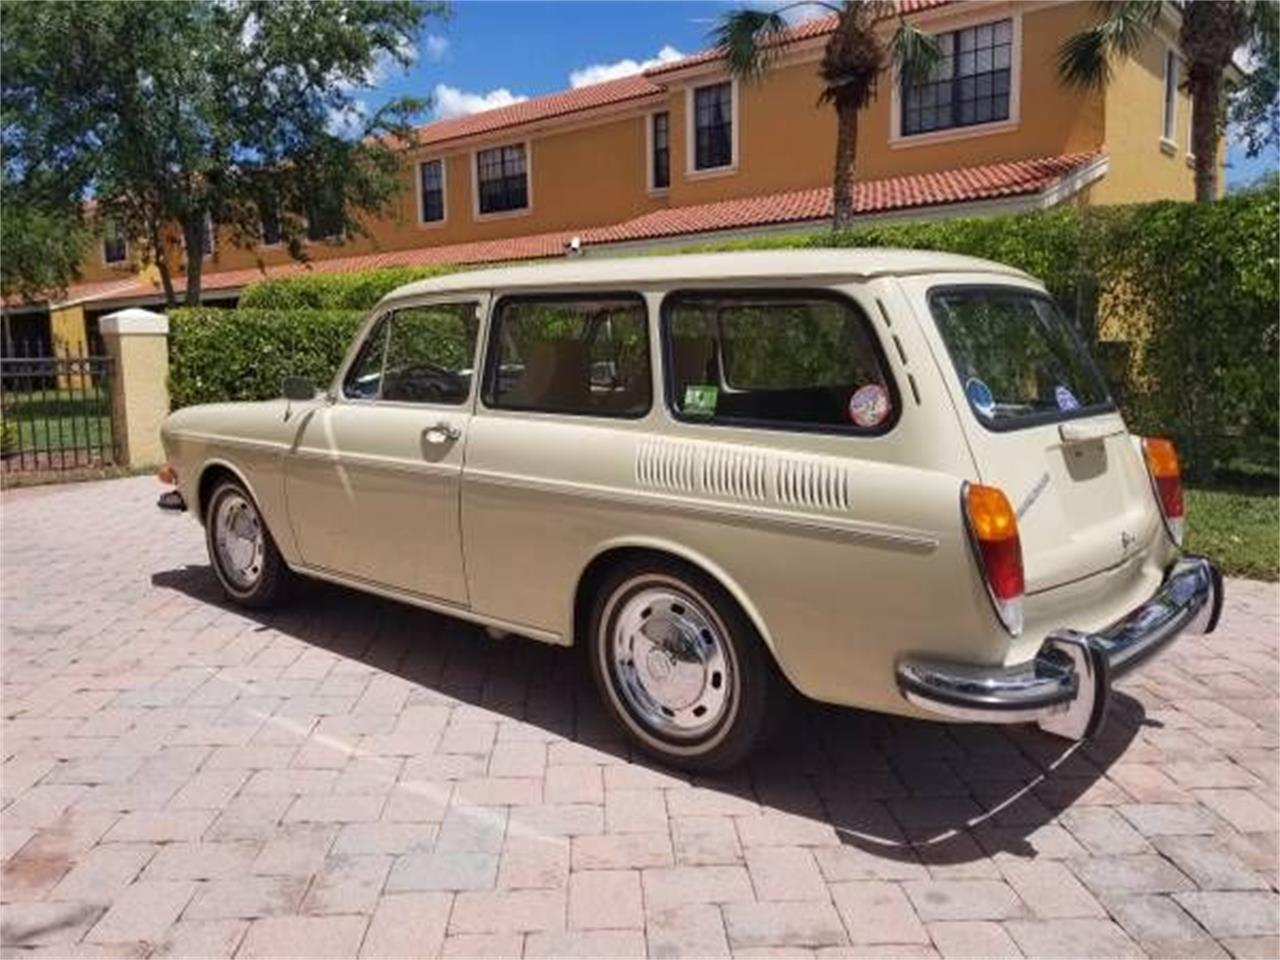 Large Picture of 1971 Volkswagen Type 3 - $26,995.00 Offered by Classic Car Deals - P1BA